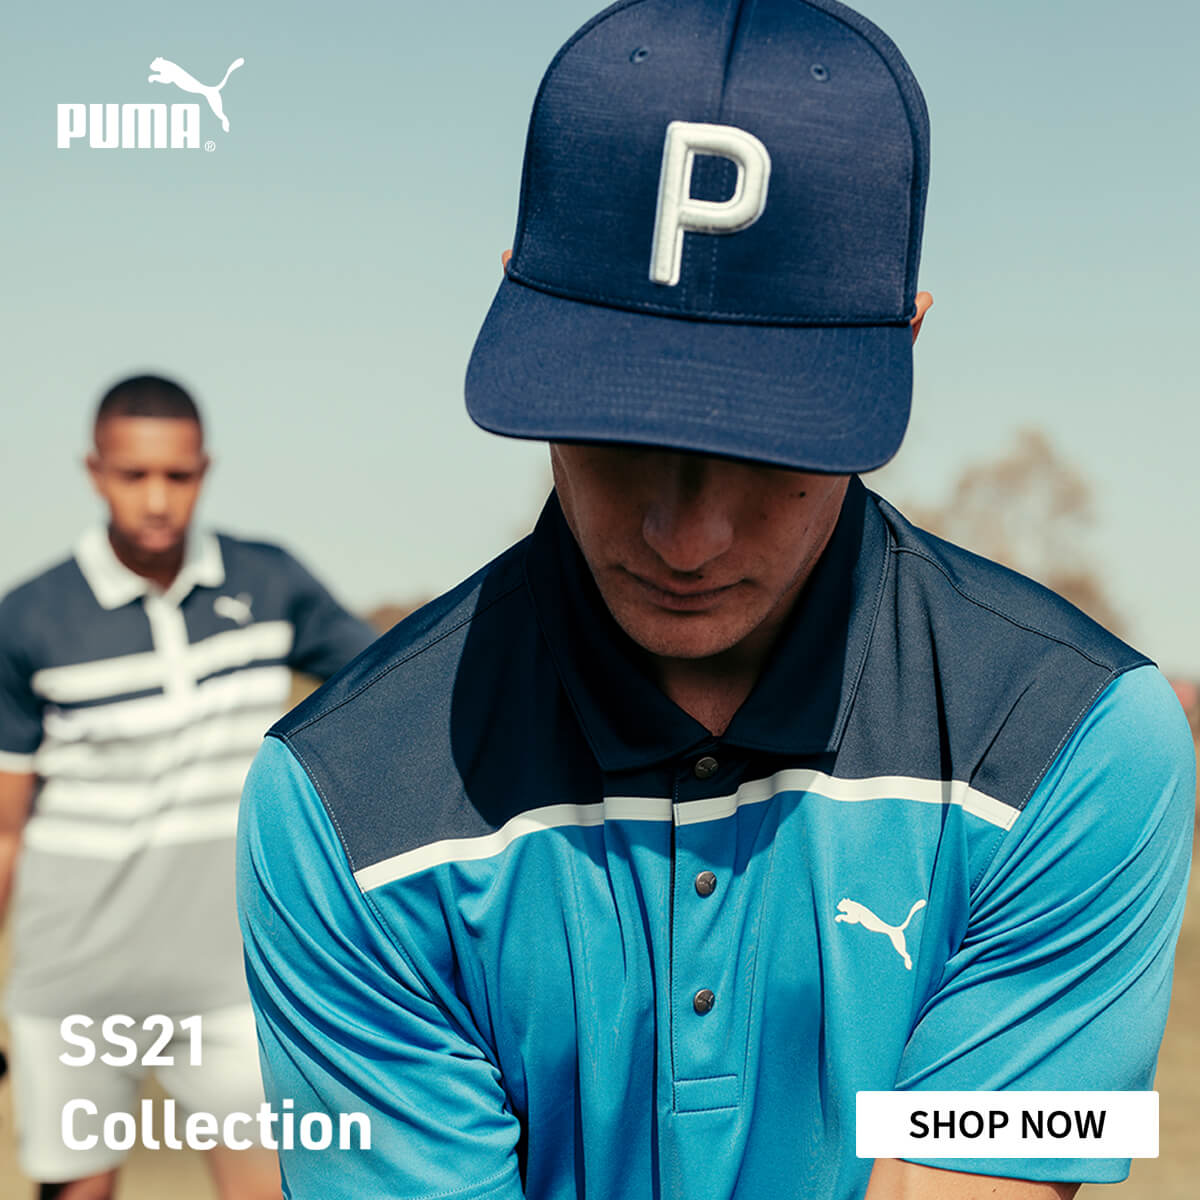 UNDER ARMOUR SS21